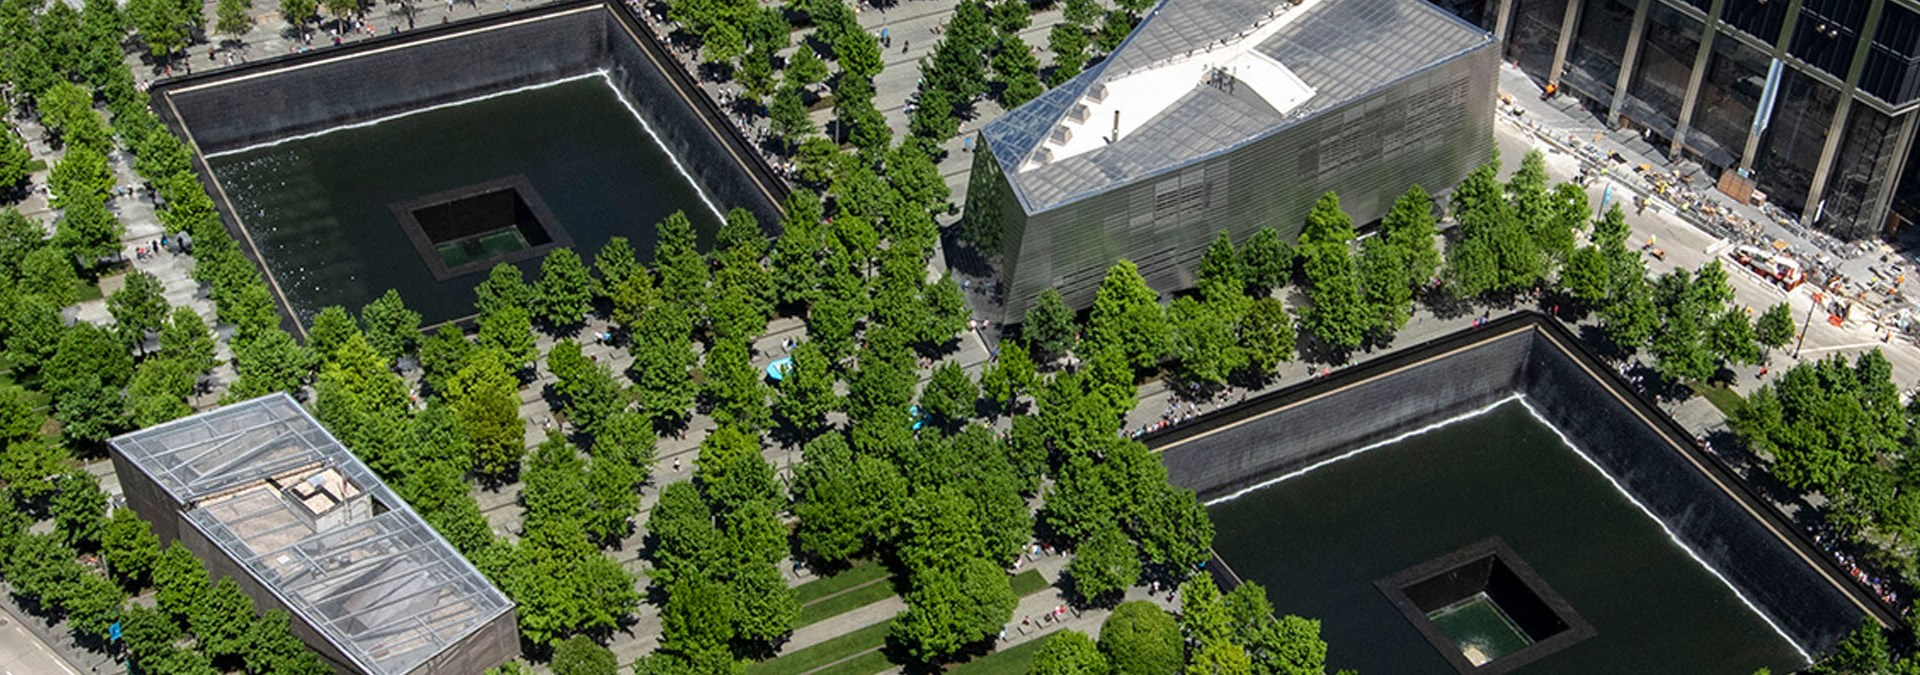 9/11 Reflections Space